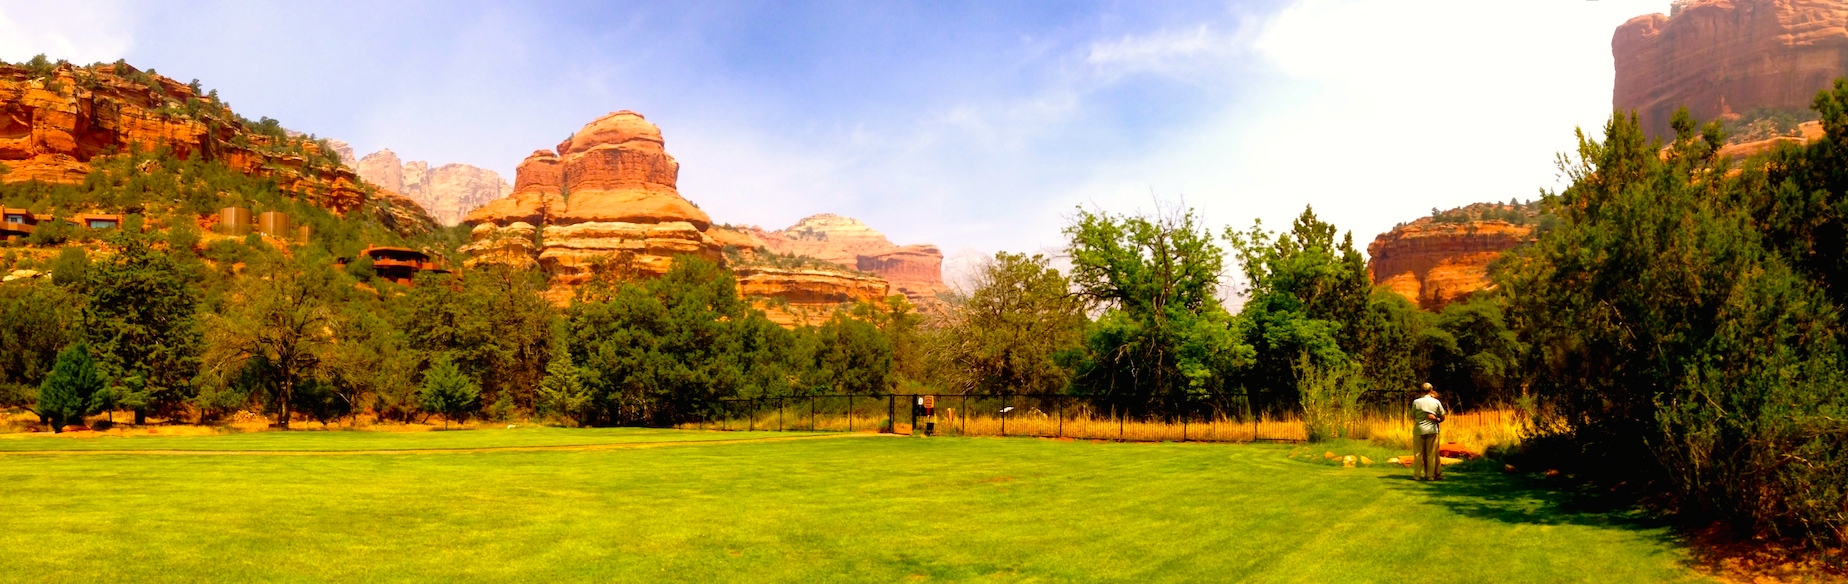 Unforgettable Sedona.